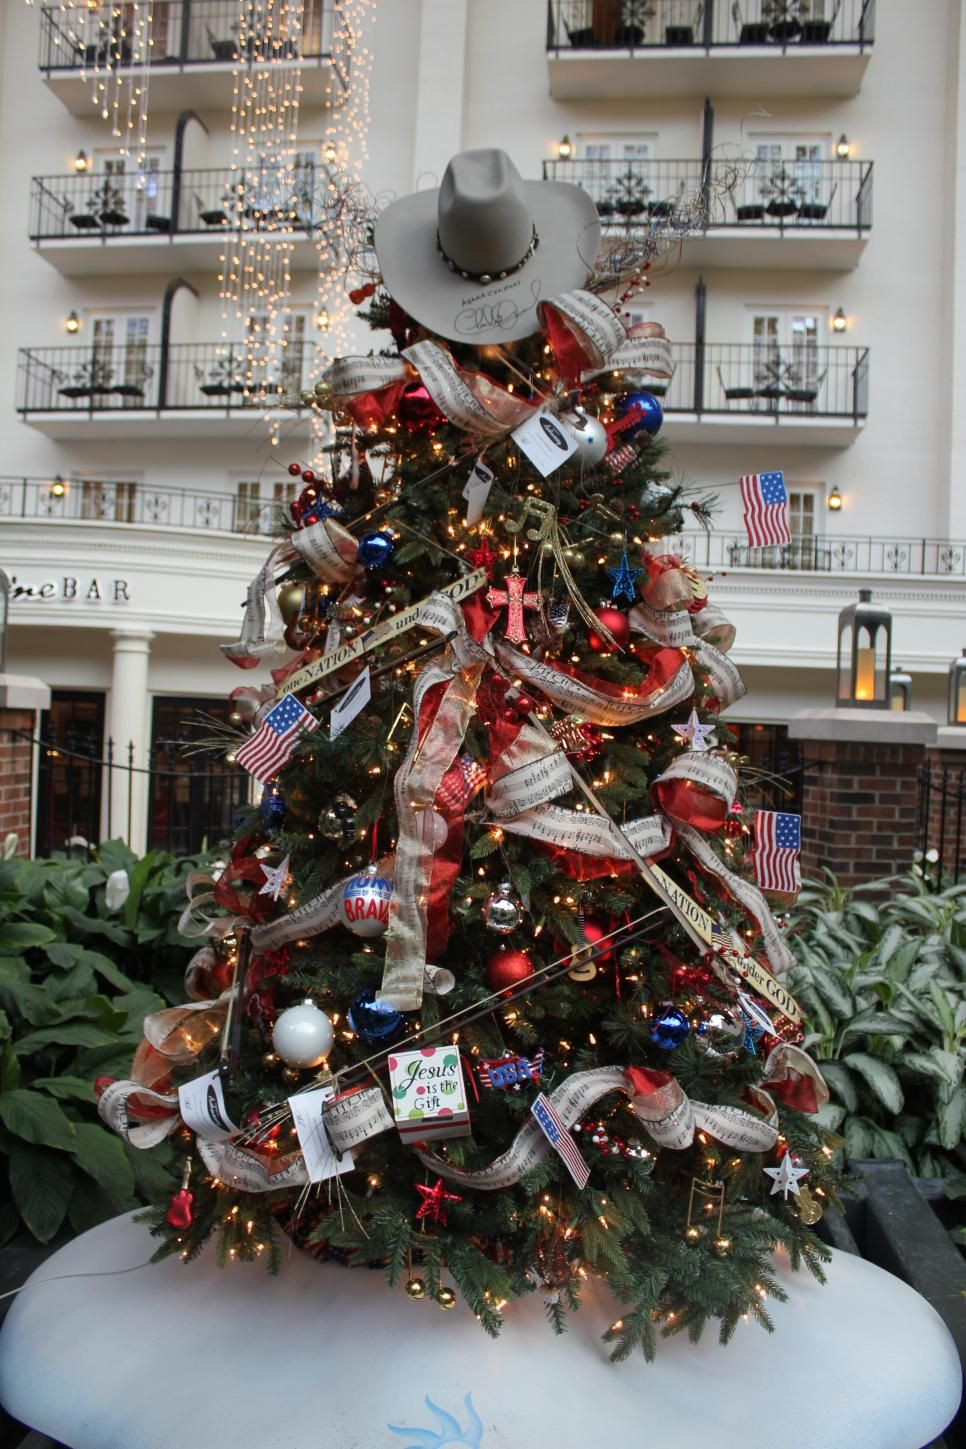 Dolly Parton Kenny Chesney The Zac Brown Band Leann Rimes And Reba Mcentire Are Just A Country Christmas Trees Christmas Tree Themes Christmas Tree Festival